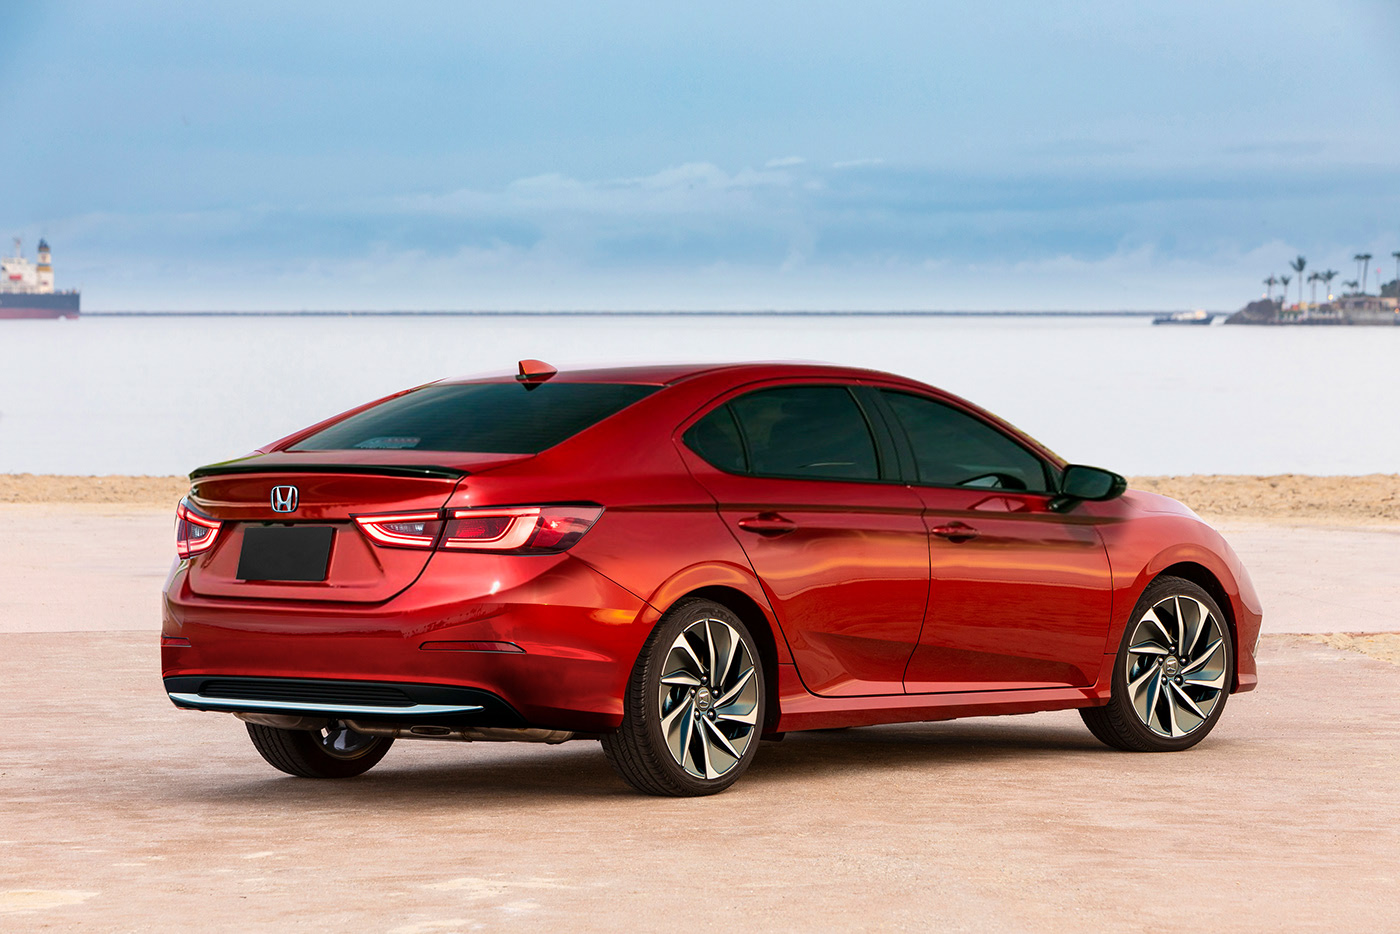 4 Honda Civic Rendered With Insight Cues, Coupe Body Style May